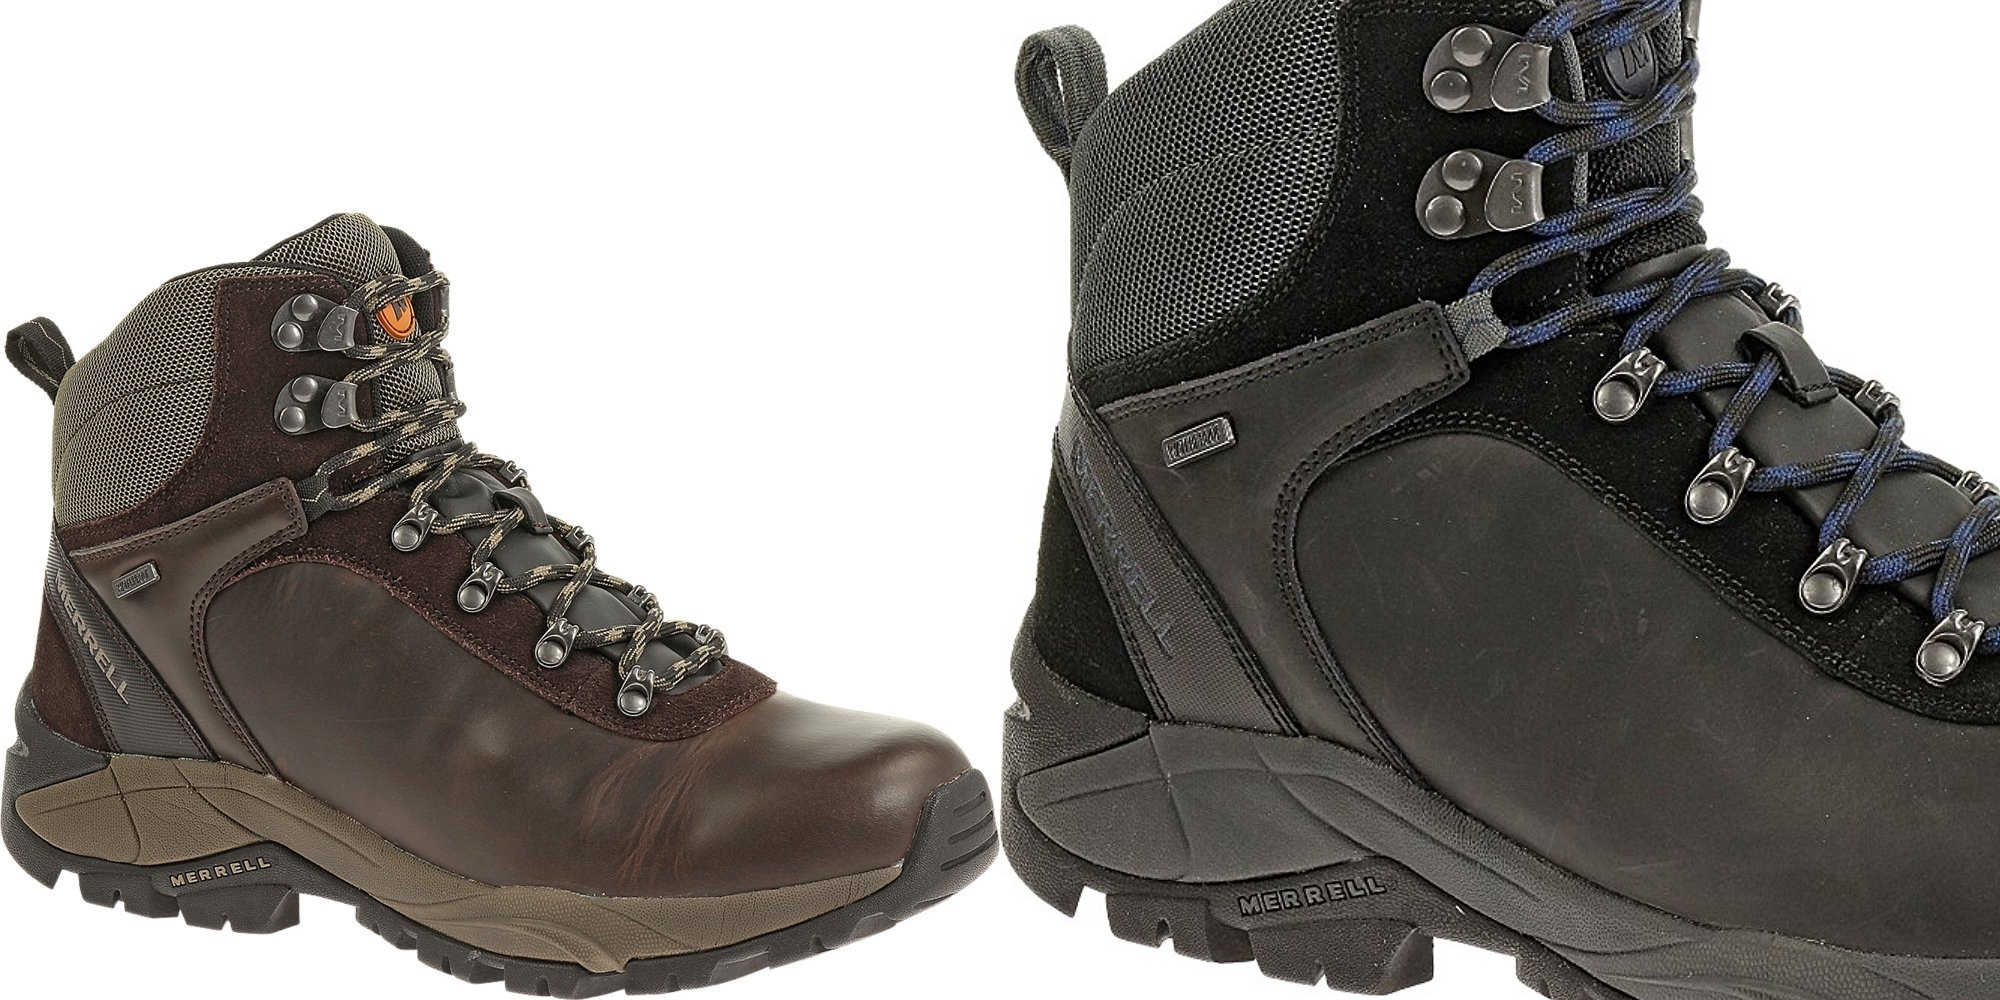 merrell-boots-sale-discount